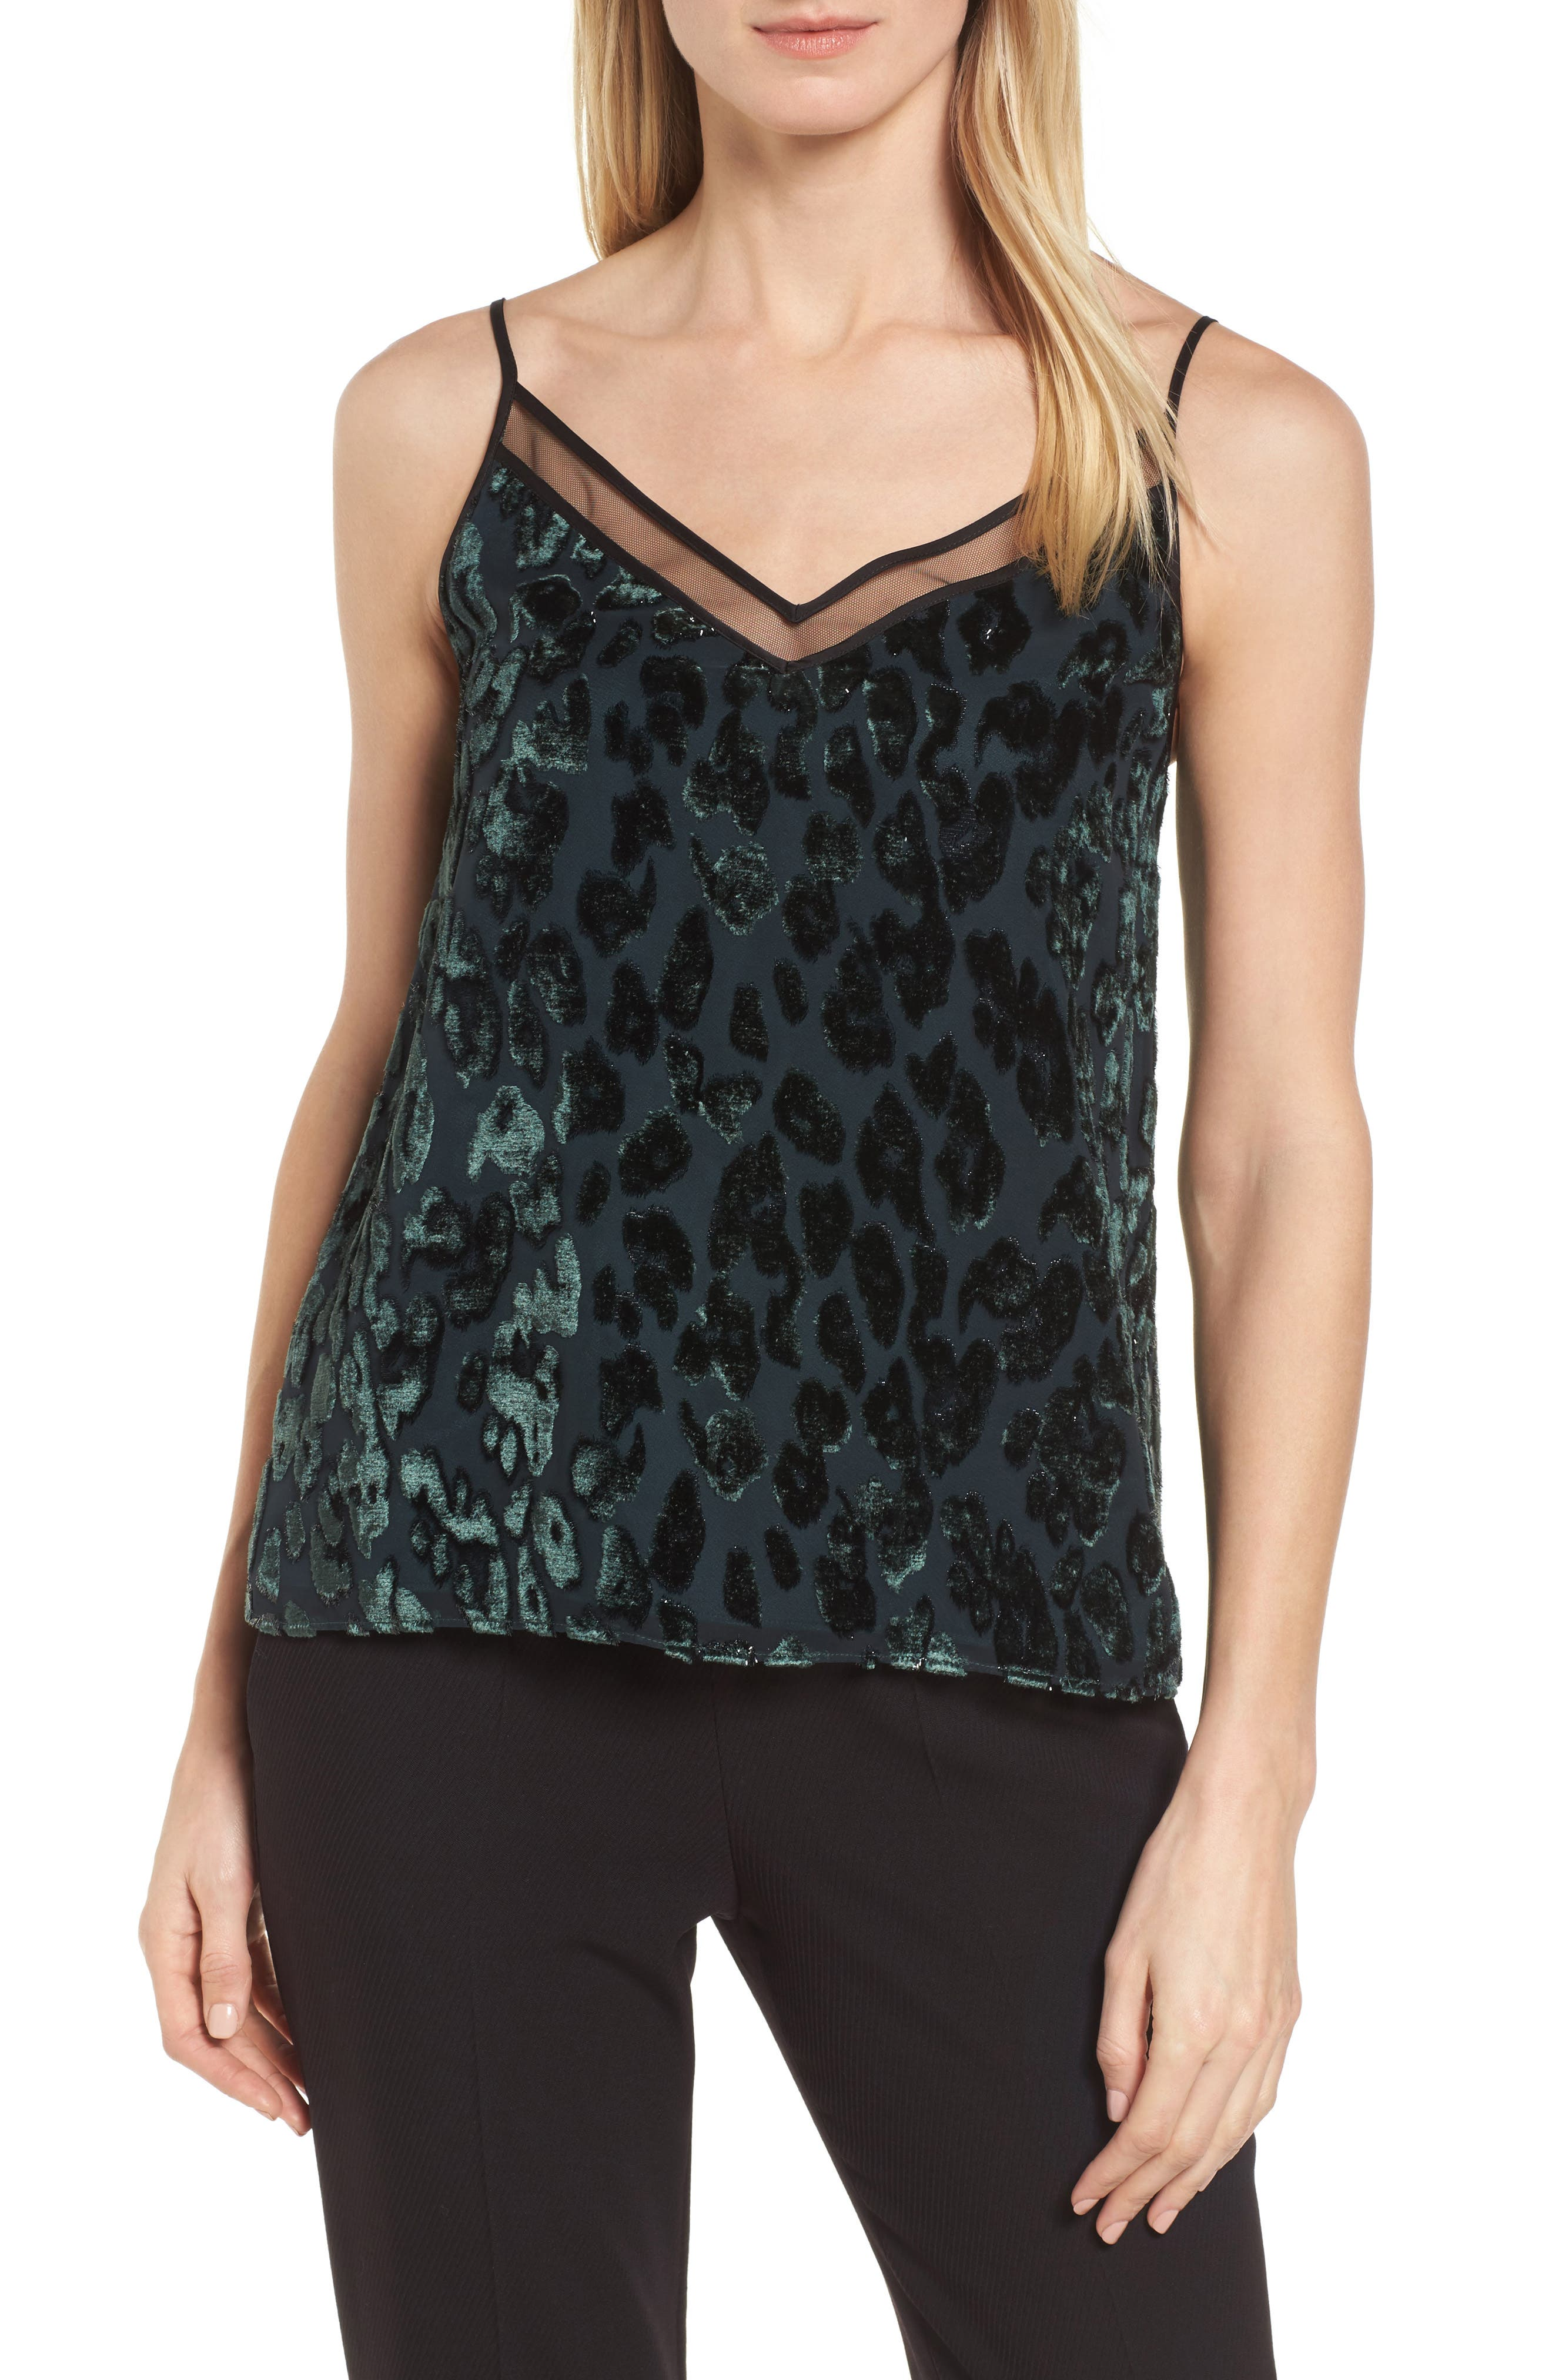 Ilomea Metallic Velvet Camisole,                         Main,                         color,